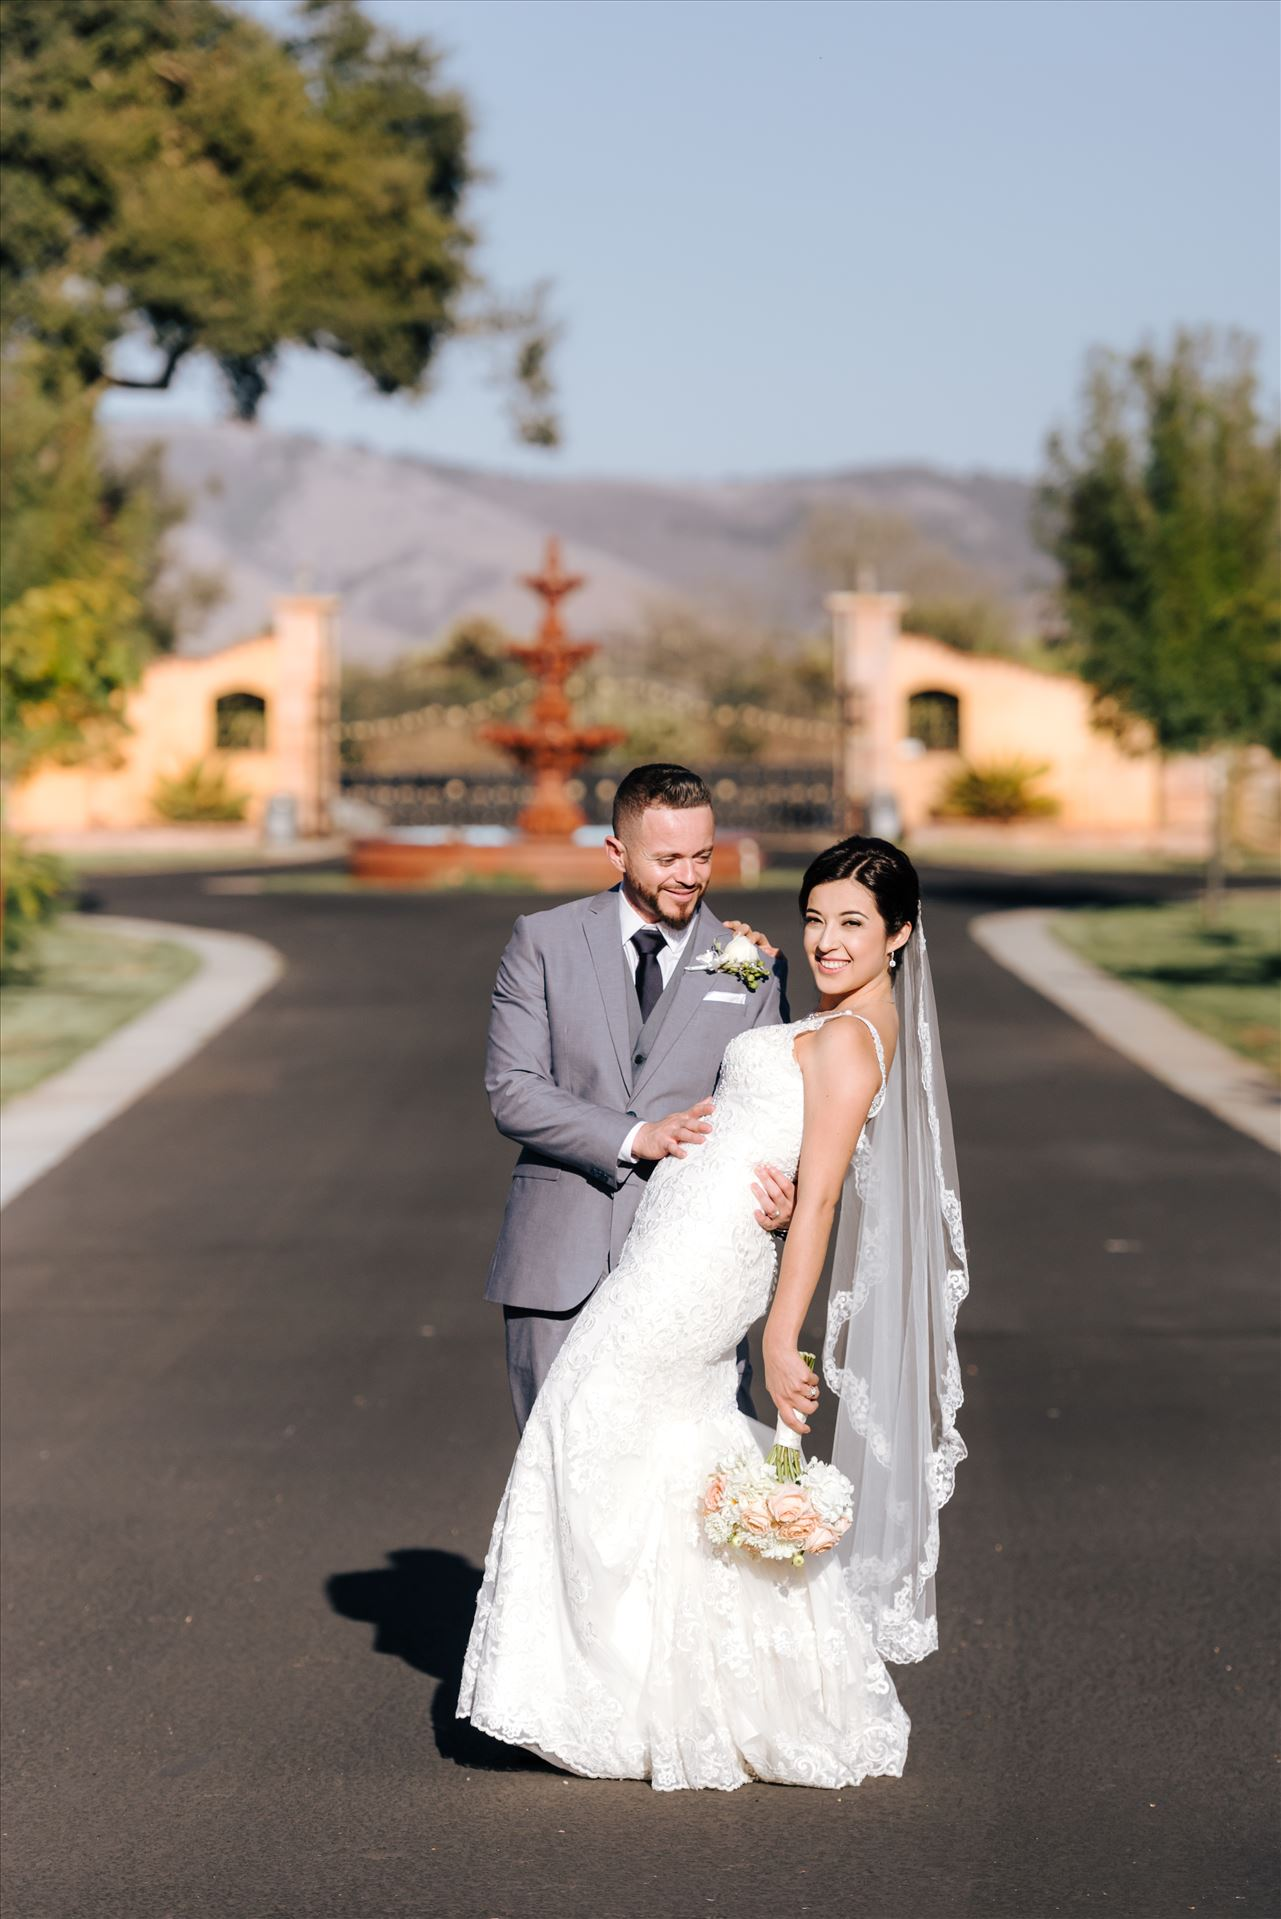 FW-5336.JPG - Arroyo Grande California Country Chic and Elegant wedding by Mirror's Edge Photography, San Luis Obispo County Wedding Photographer.  Bride and Groom at A&C Ranch. by Sarah Williams